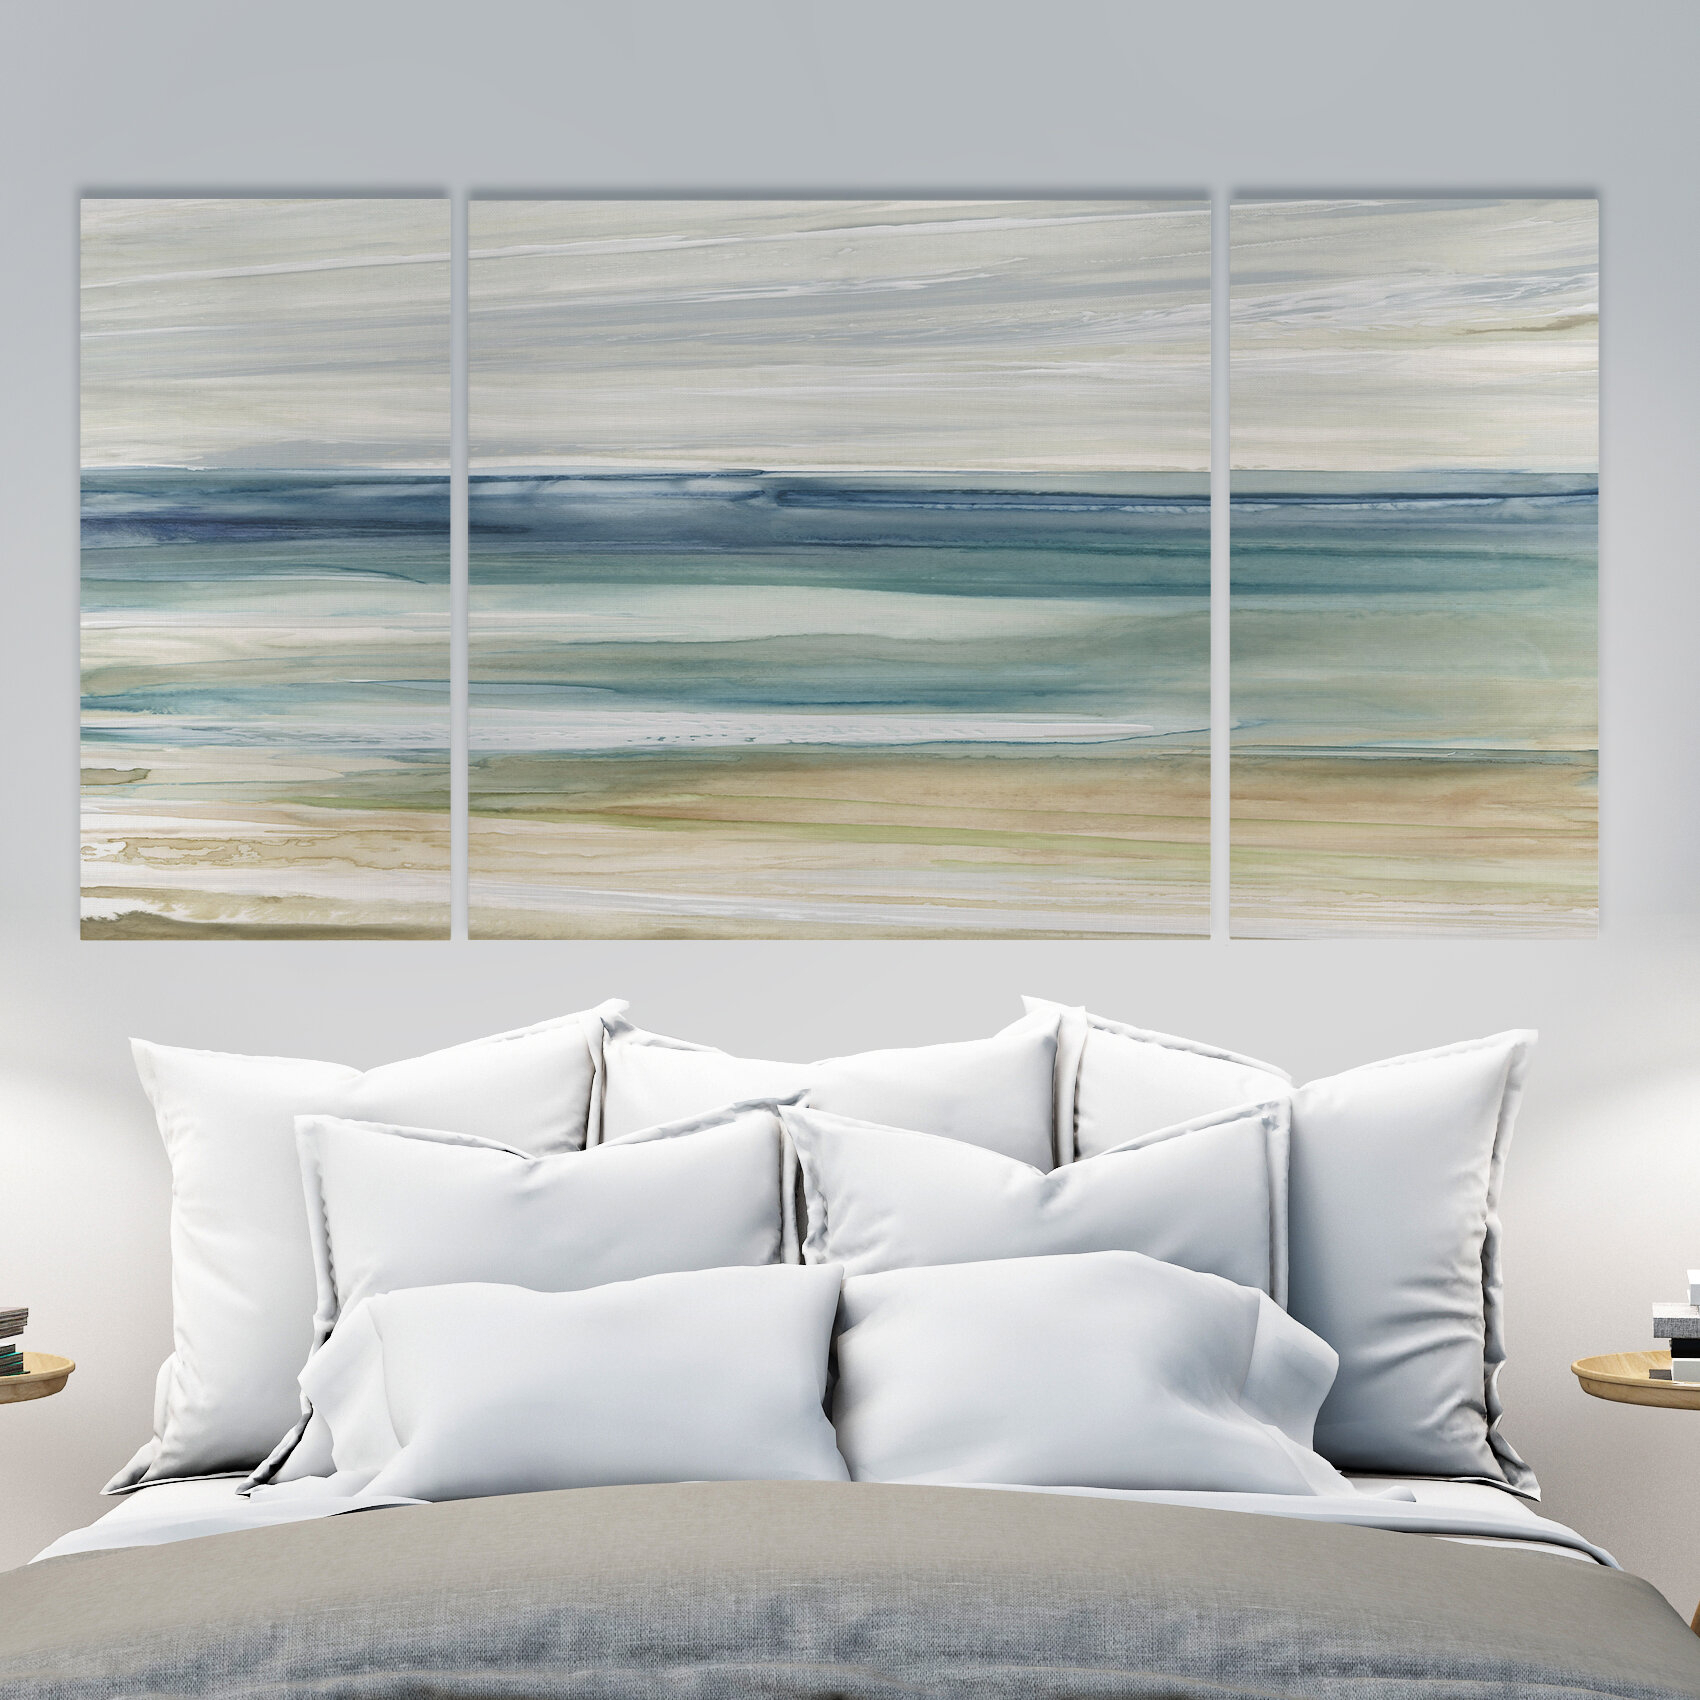 3 Piece Wall Art You'll Love In 2019 | Wayfair within 3 Piece Wall Decor Sets by Wrought Studio (Image 19 of 30)